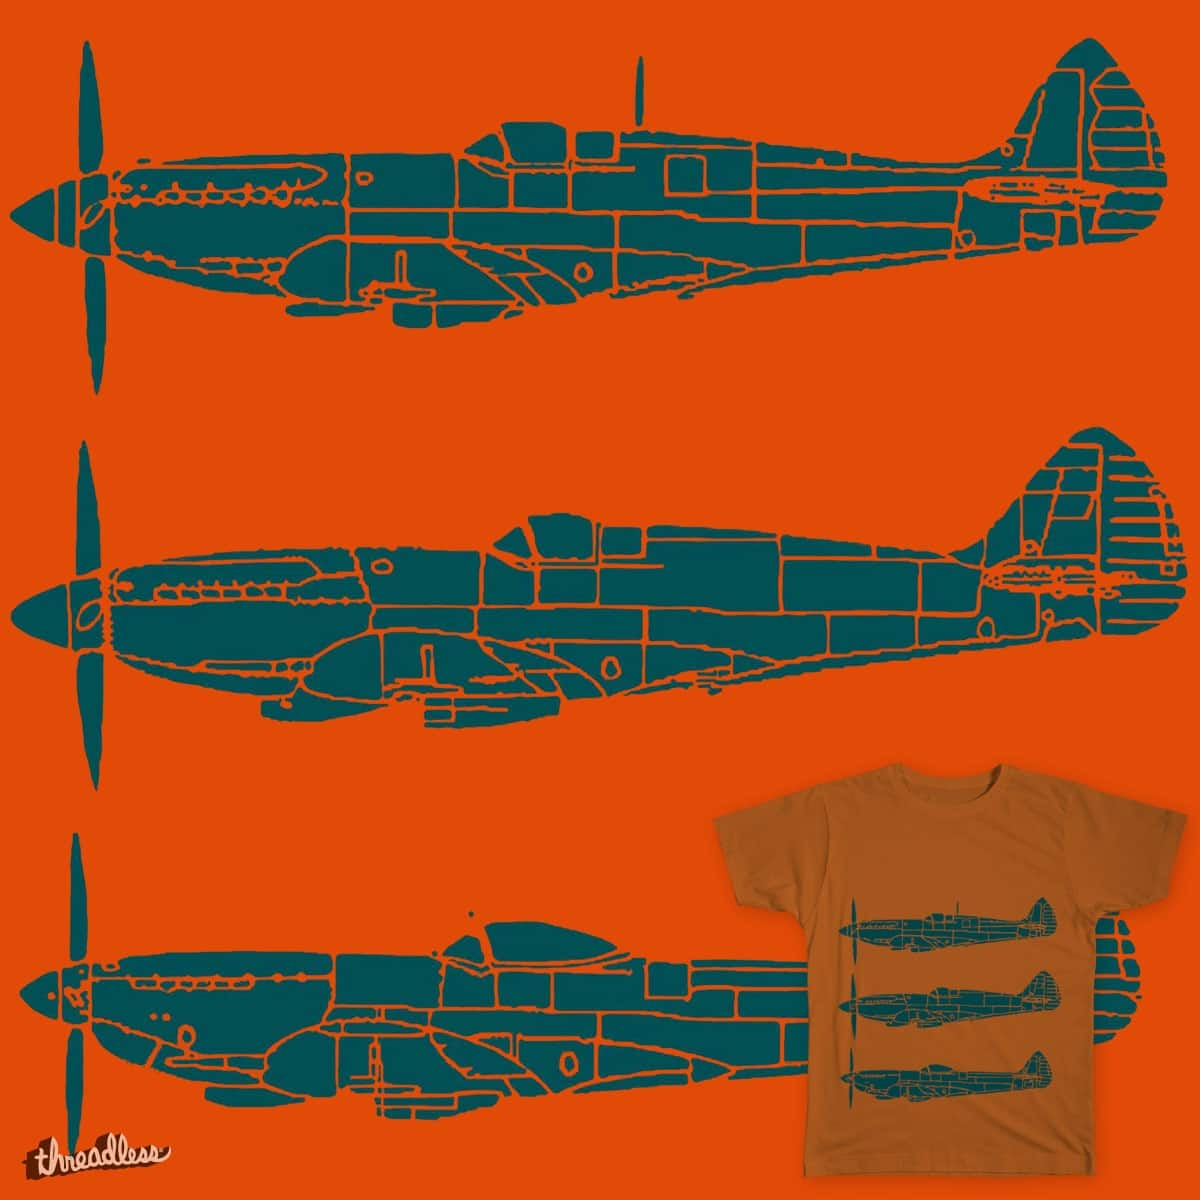 Spitfire by FloraNPaterson on Threadless